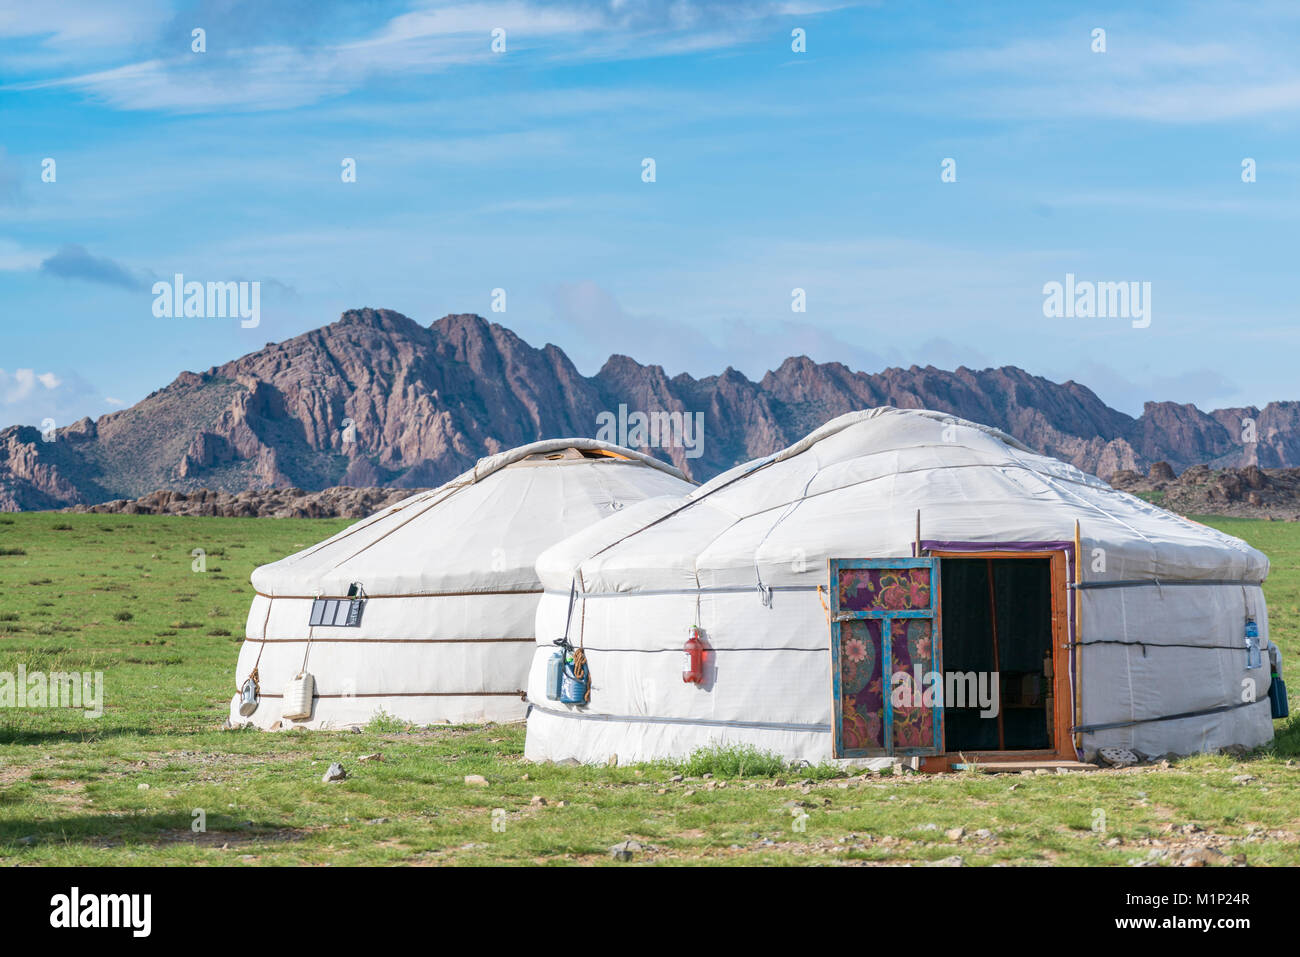 Mongolian gers and mountains in the background, Middle Gobi province, Mongolia, Central Asia, Asia - Stock Image